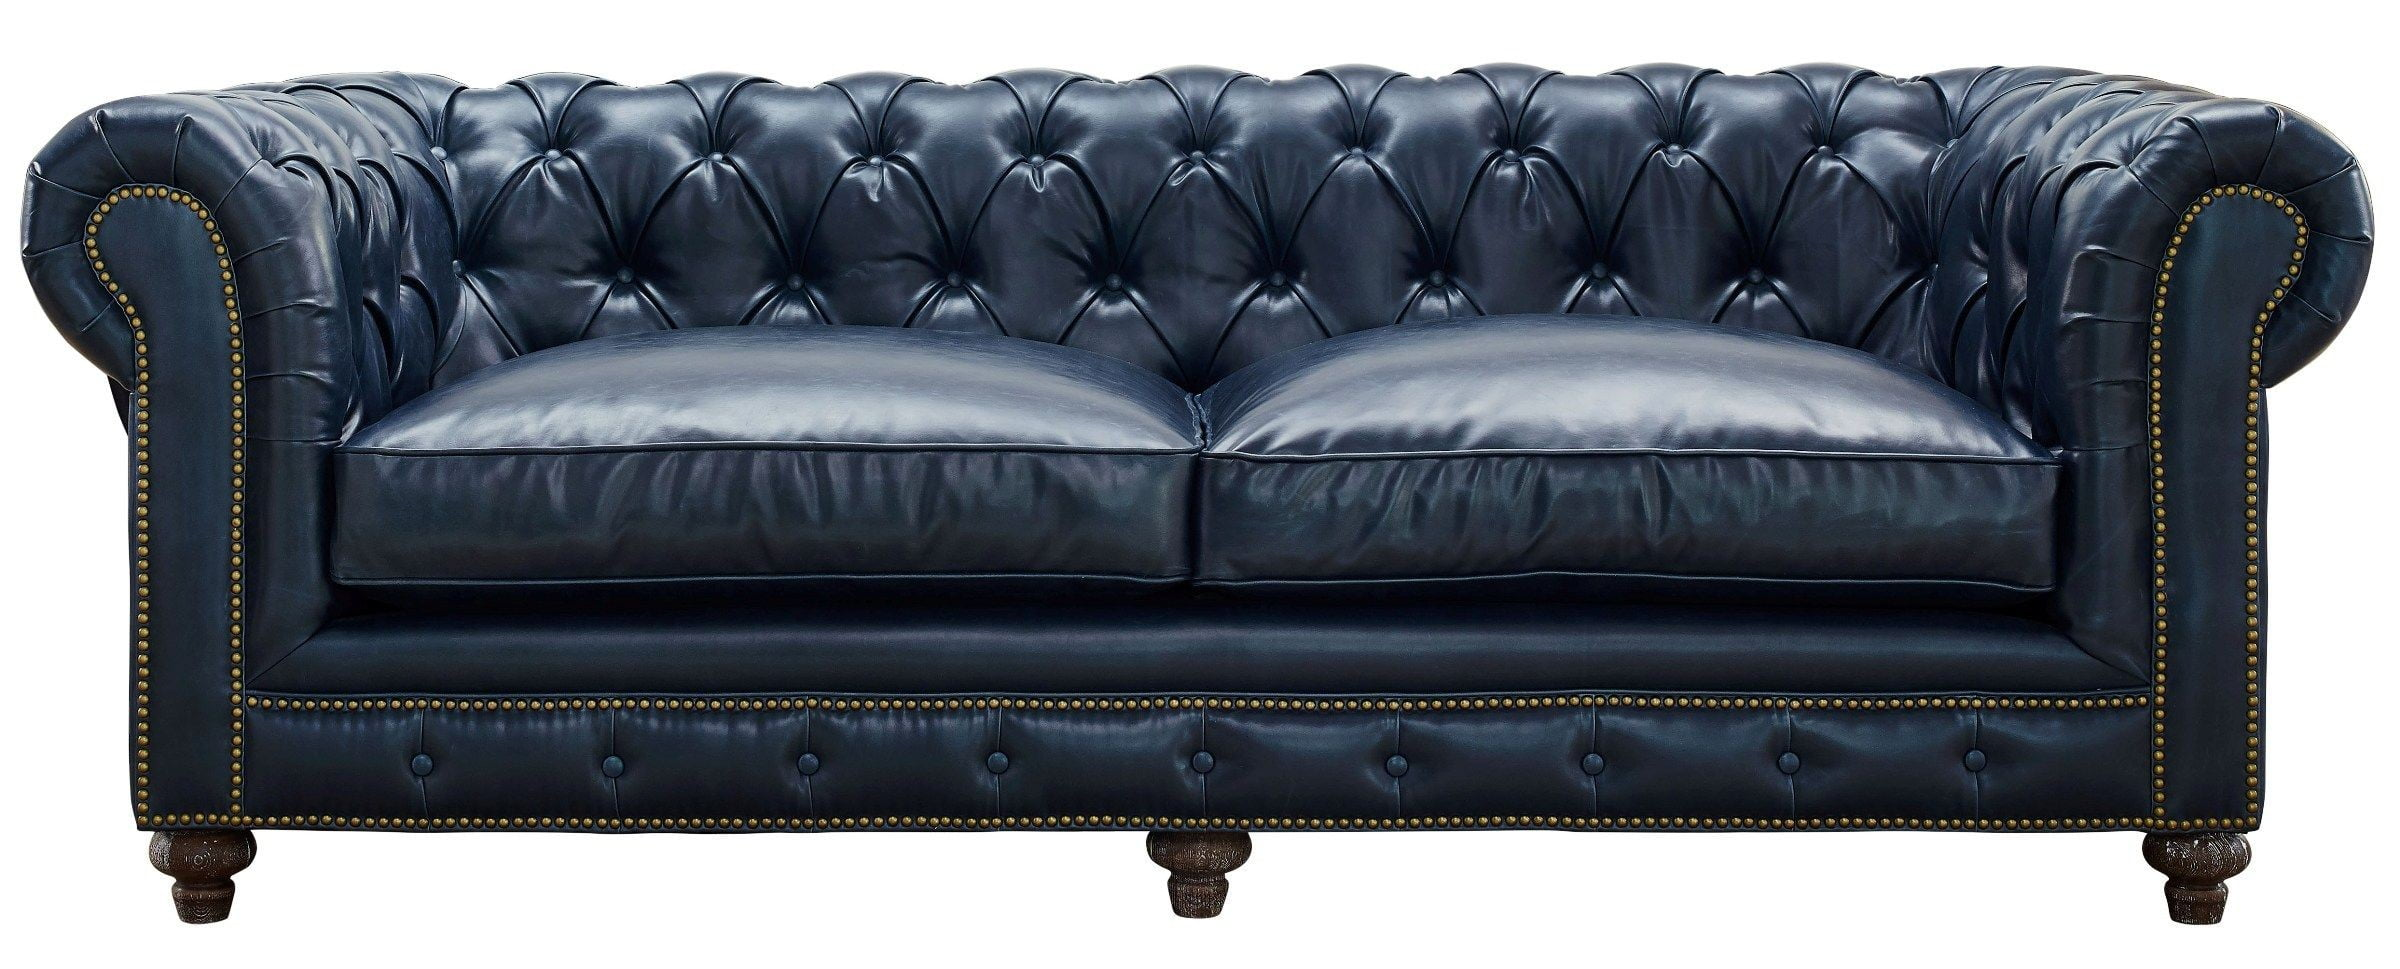 Durango Rustic Blue Leather Sofa From Tov S38 Coleman